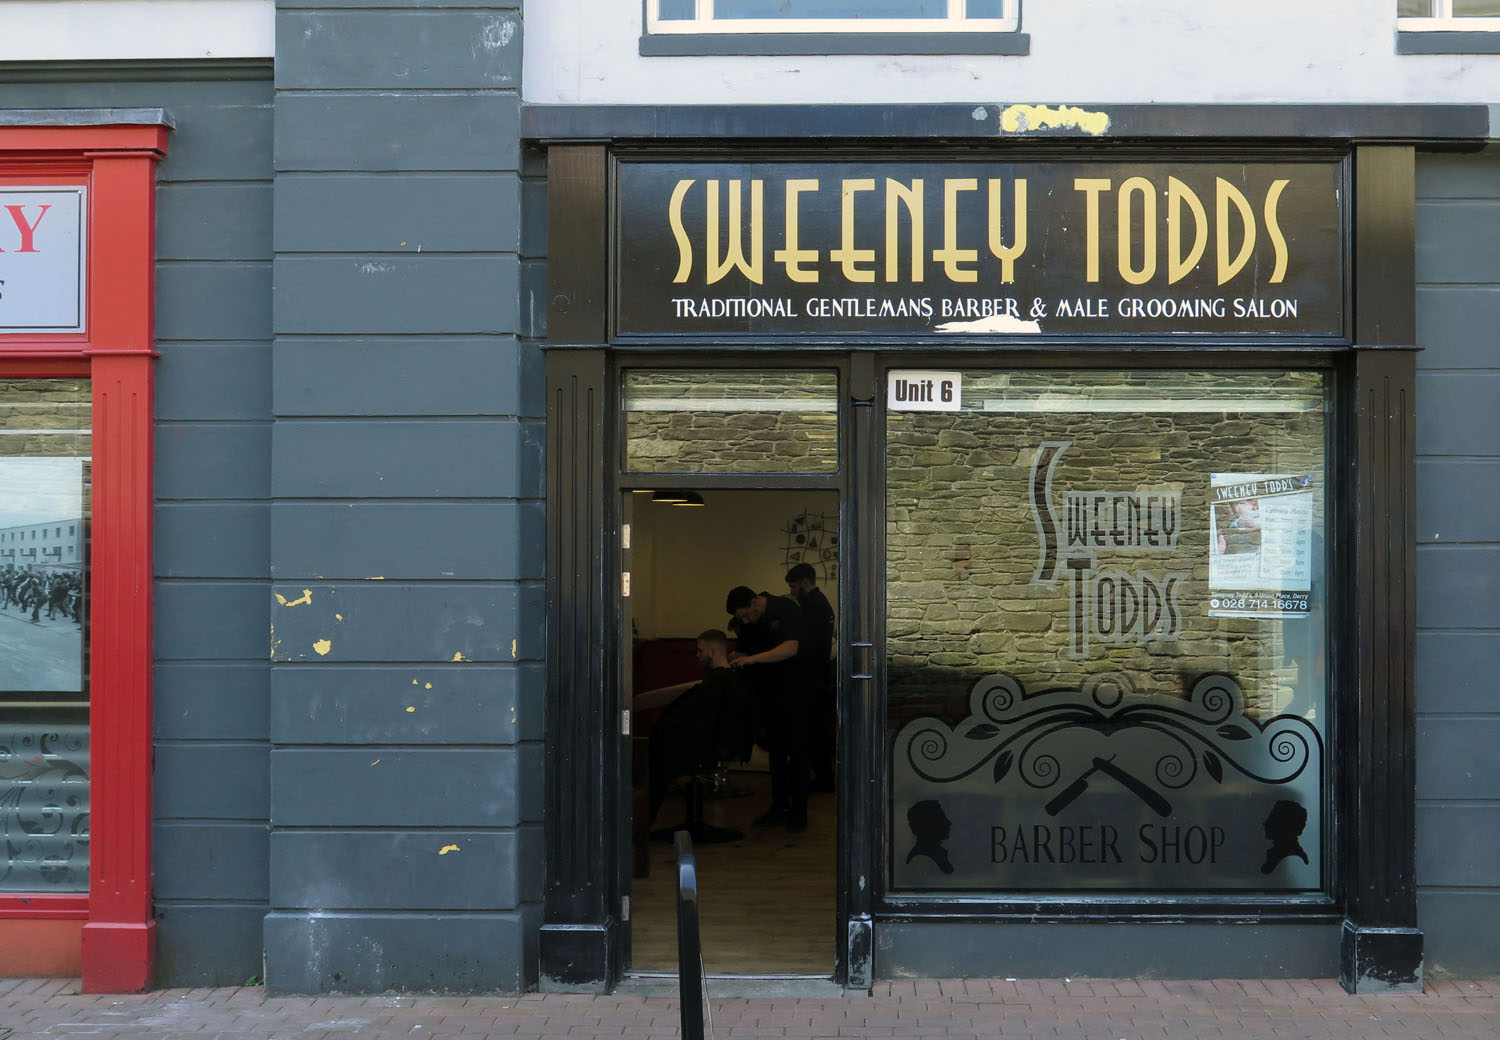 Northern-Ireland-Derry-Londonderry-Street-Scenes-Sweeney-Todds